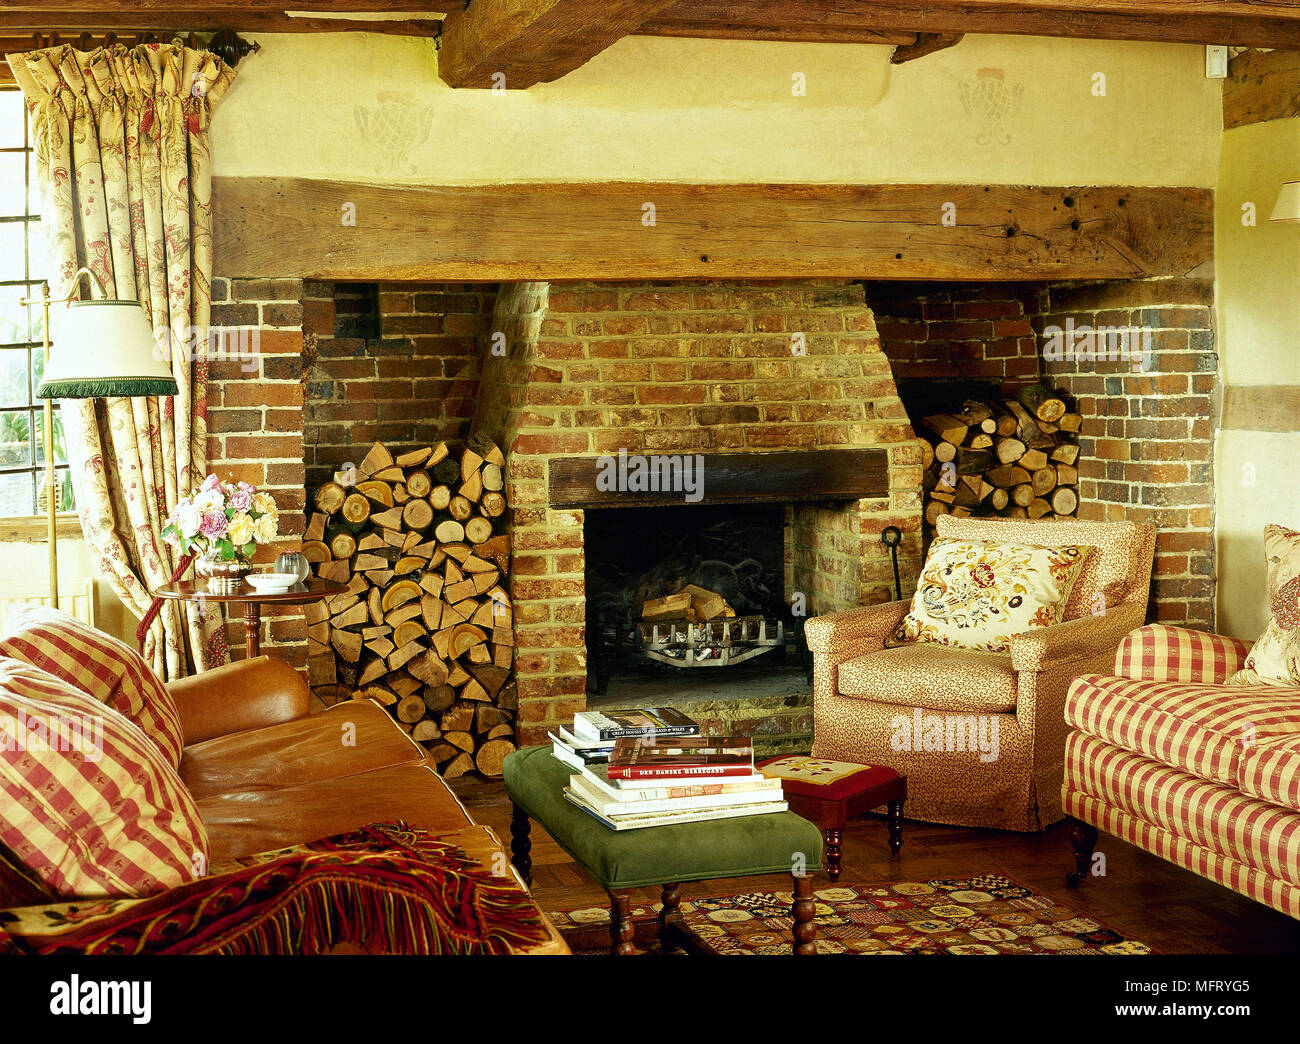 Country Cottage Sitting Room Inglenook Fireplace Sofa Upholstered